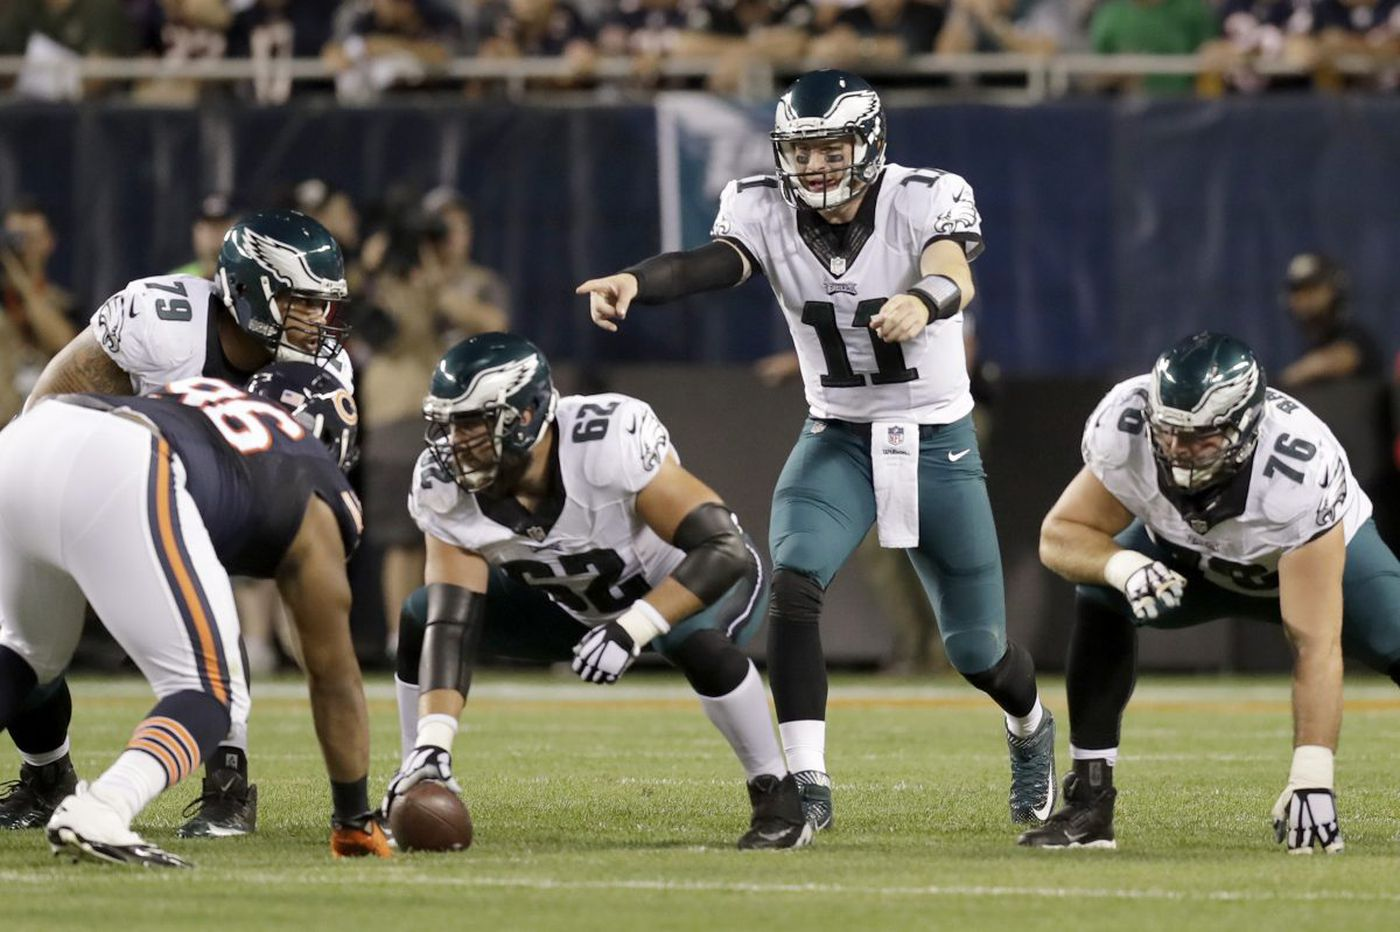 Eagles-Bears scouting report | Paul Domowitch